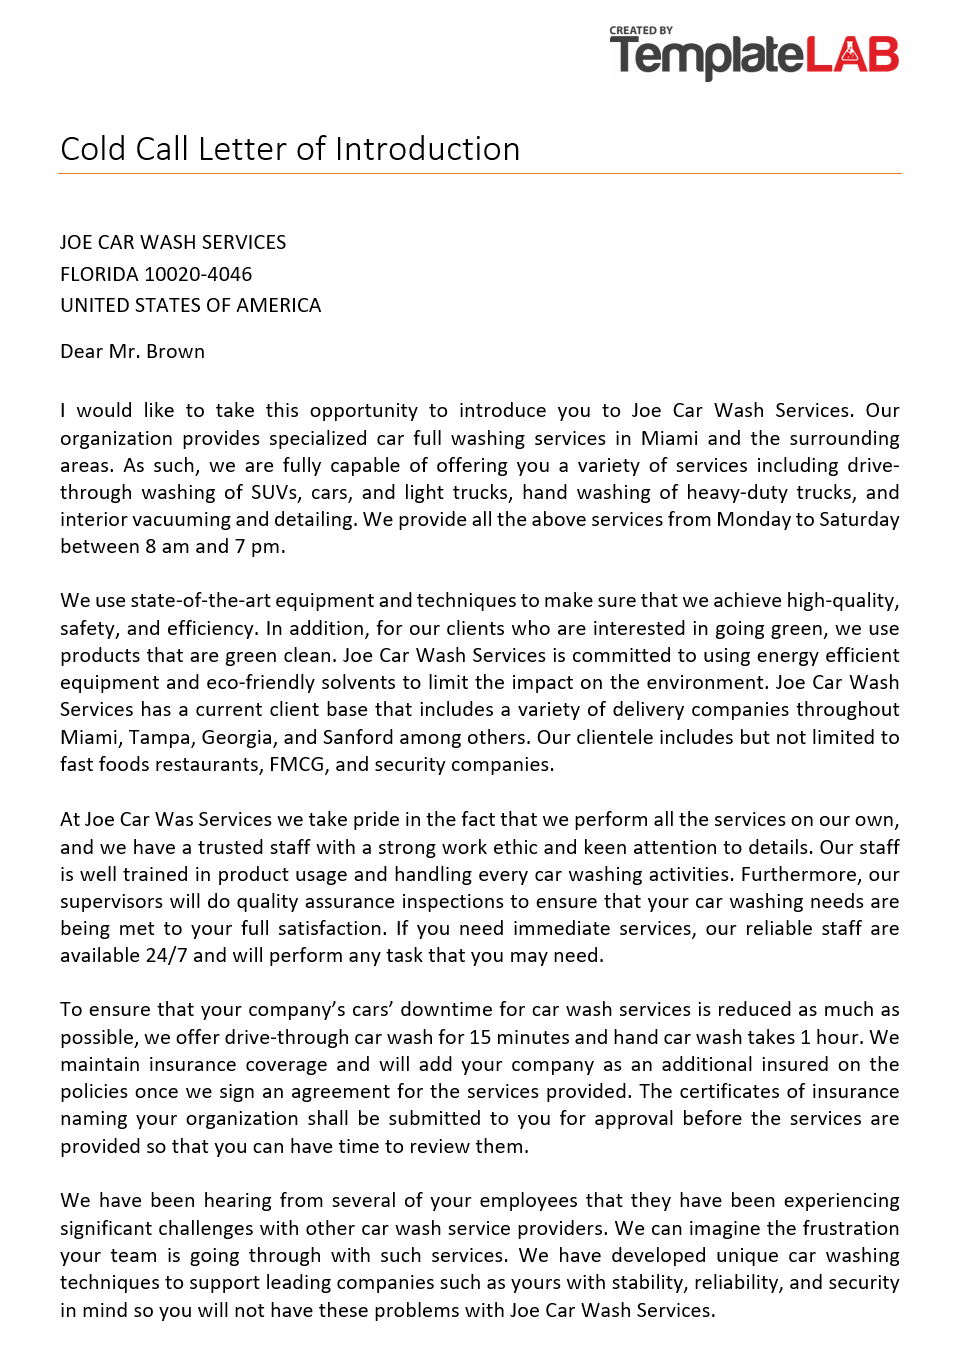 Free Cold Call Letter of Introduction 2